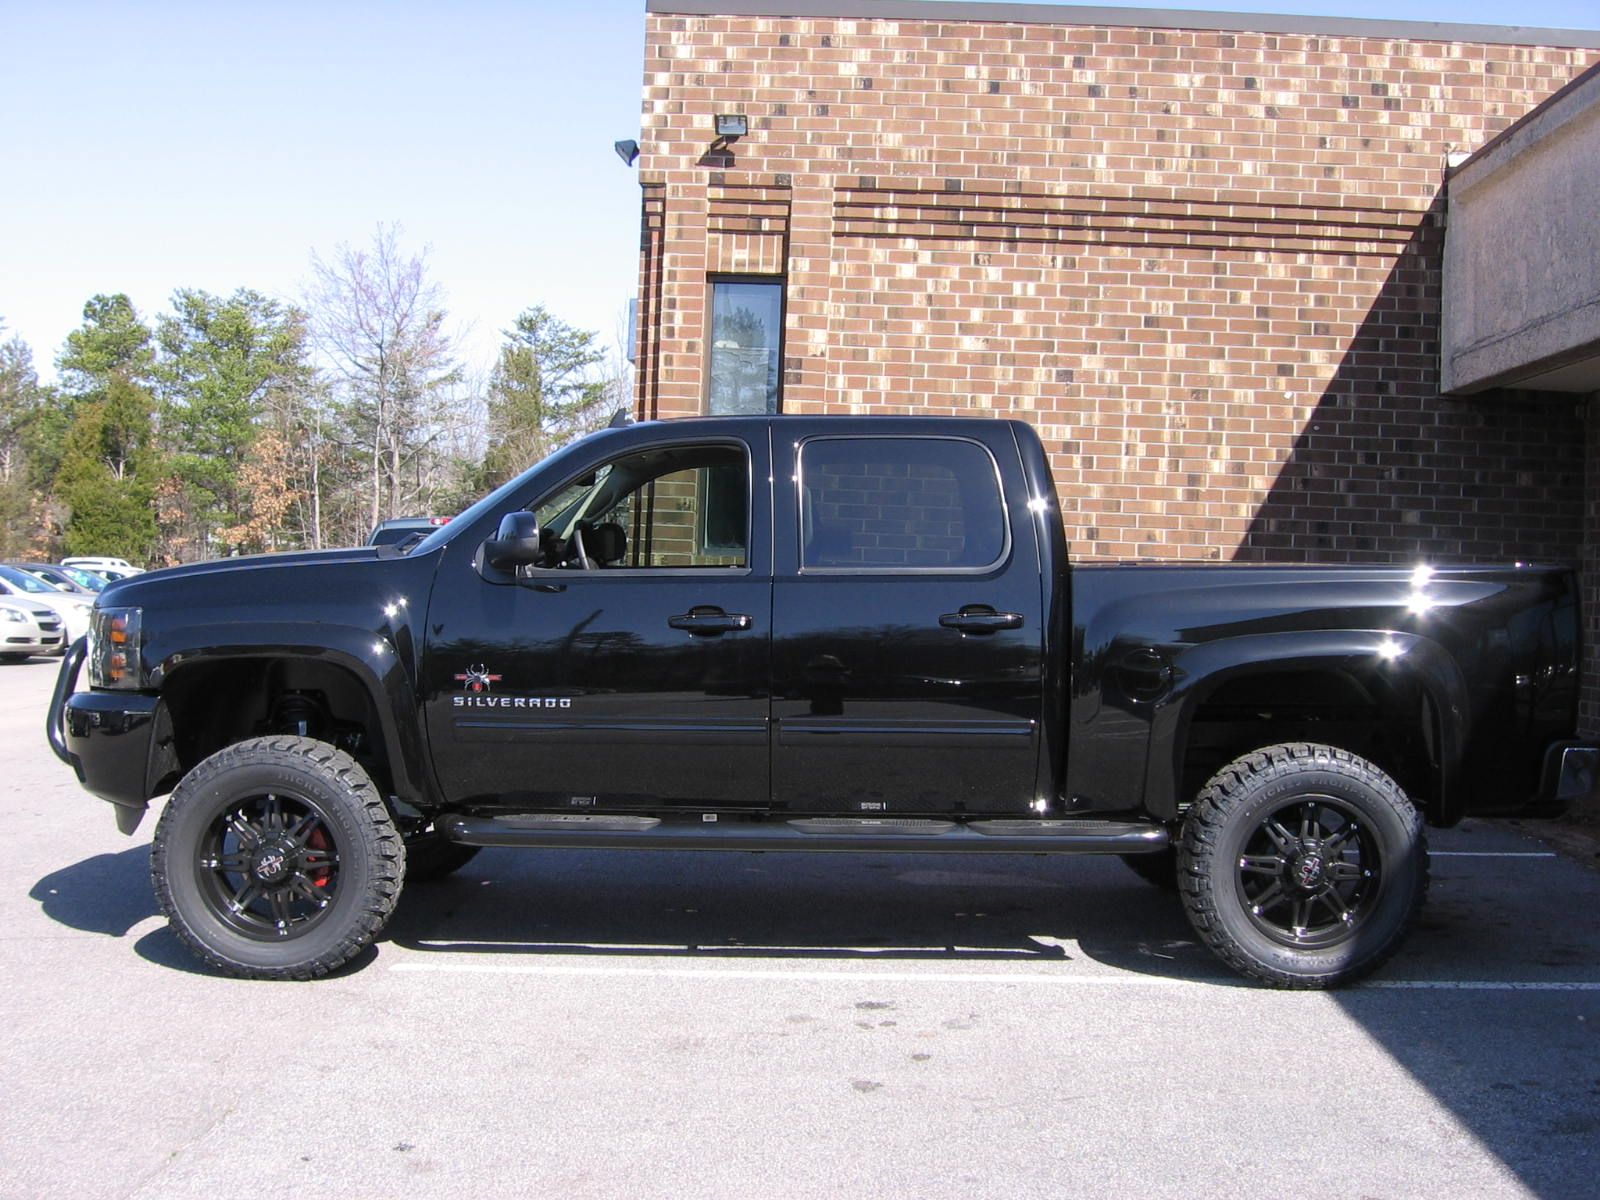 All new black widow addtion 2012 chevrolet silverado custom made by southern comfort has the black widow package with mickey thompson